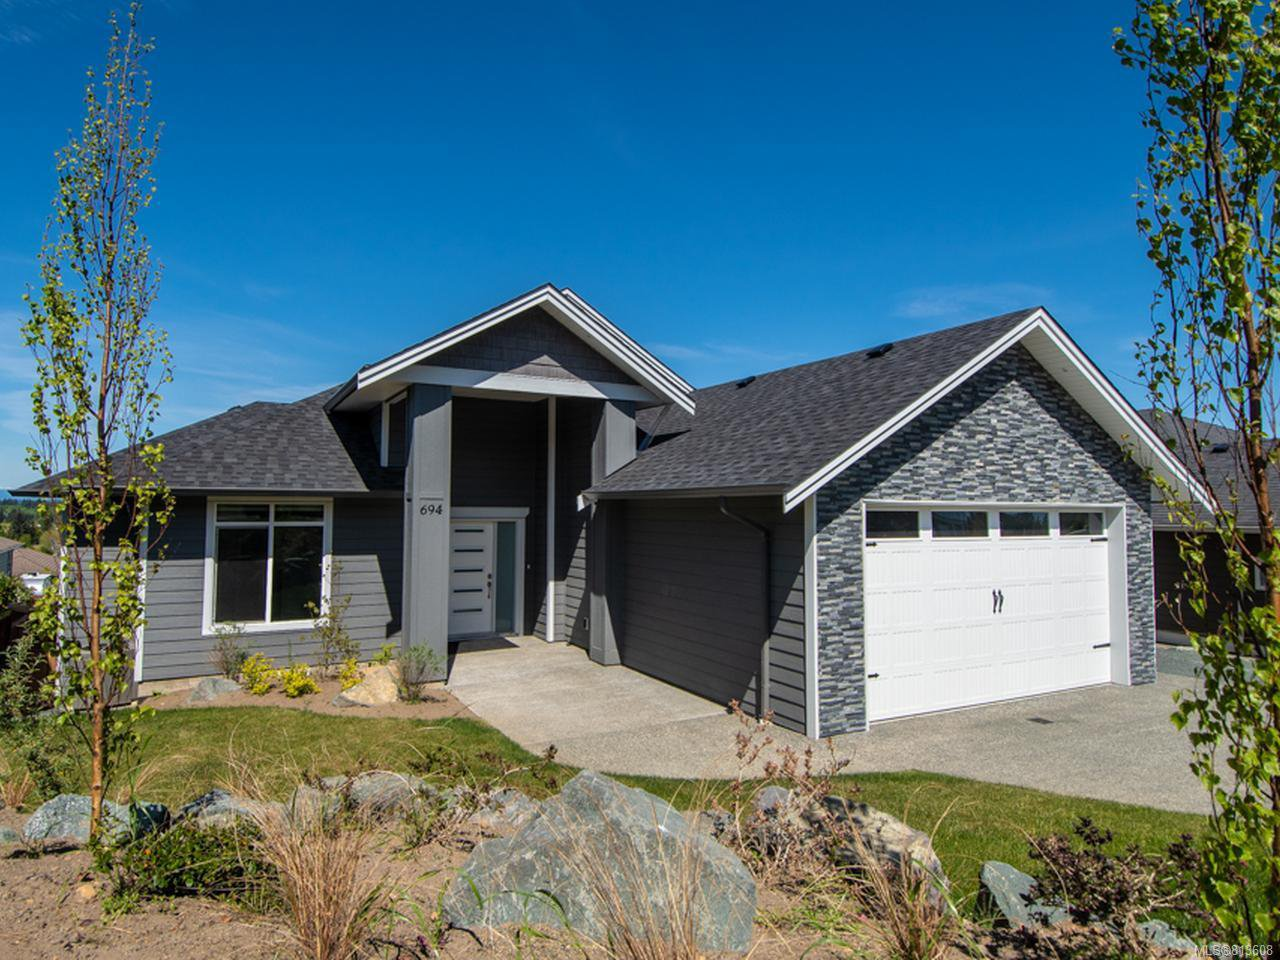 Main Photo: 694 MARINER DRIVE in CAMPBELL RIVER: CR Willow Point House for sale (Campbell River)  : MLS®# 813608